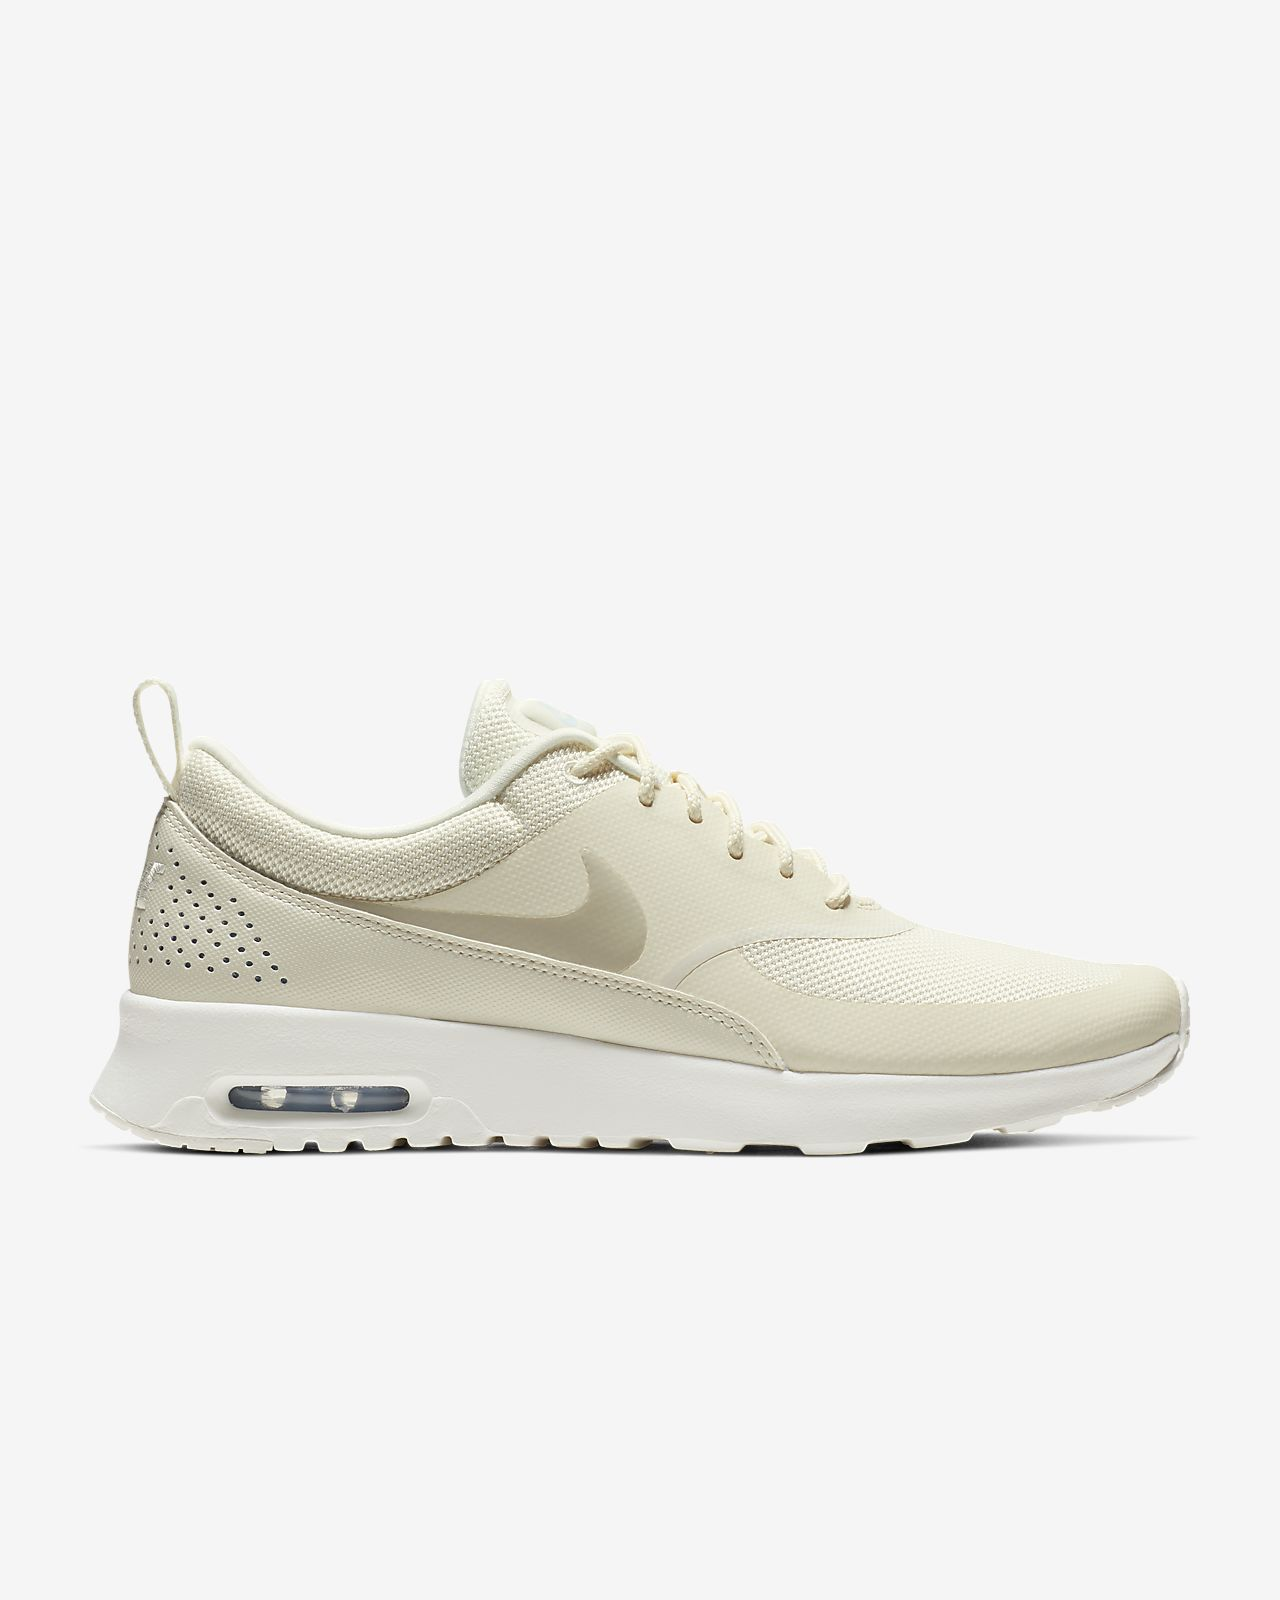 bc140a07fba5 Low Resolution Nike Air Max Thea Women s Shoe Nike Air Max Thea Women s Shoe